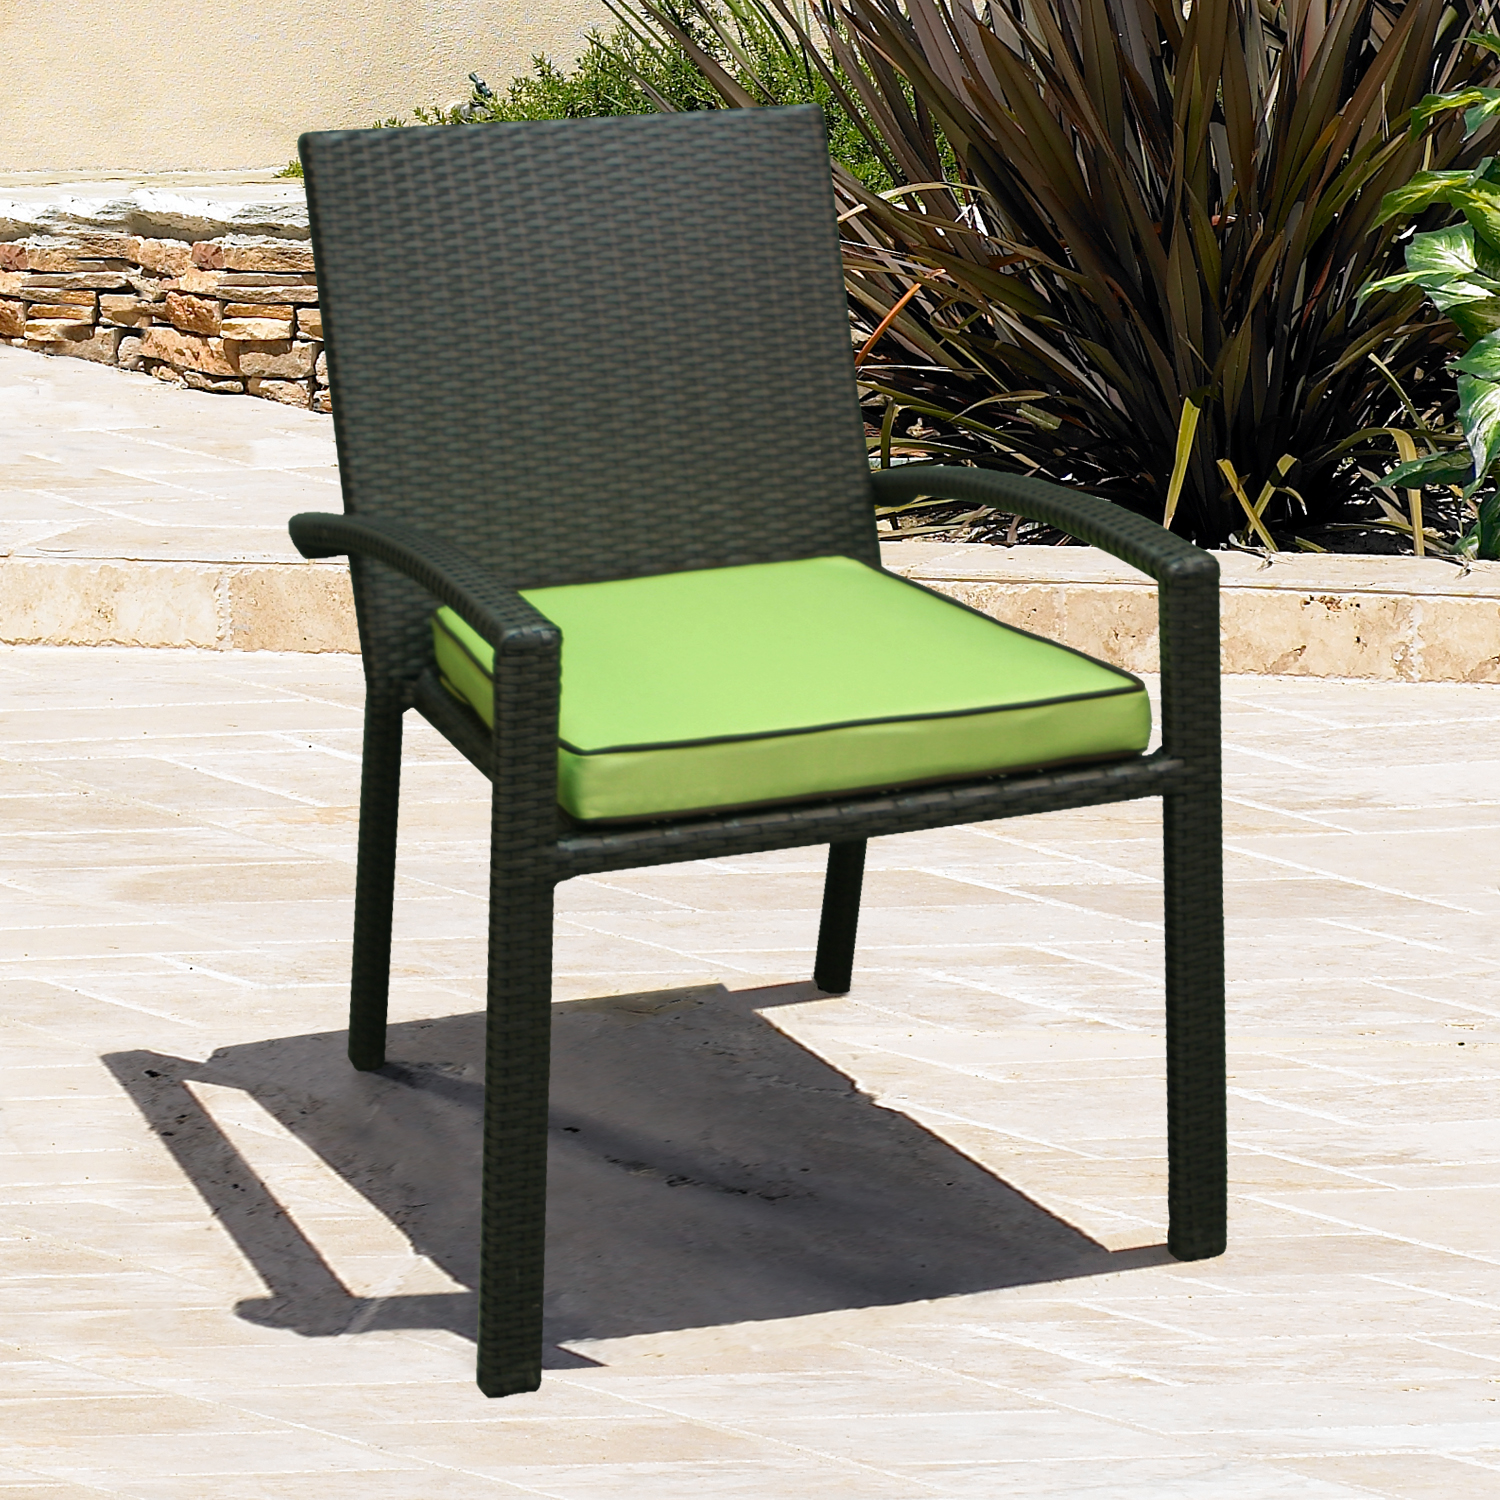 VENICE ARM CHAIR RC893 GRADE A $220.00 GRADE B $230.00 GRADE C $240.00